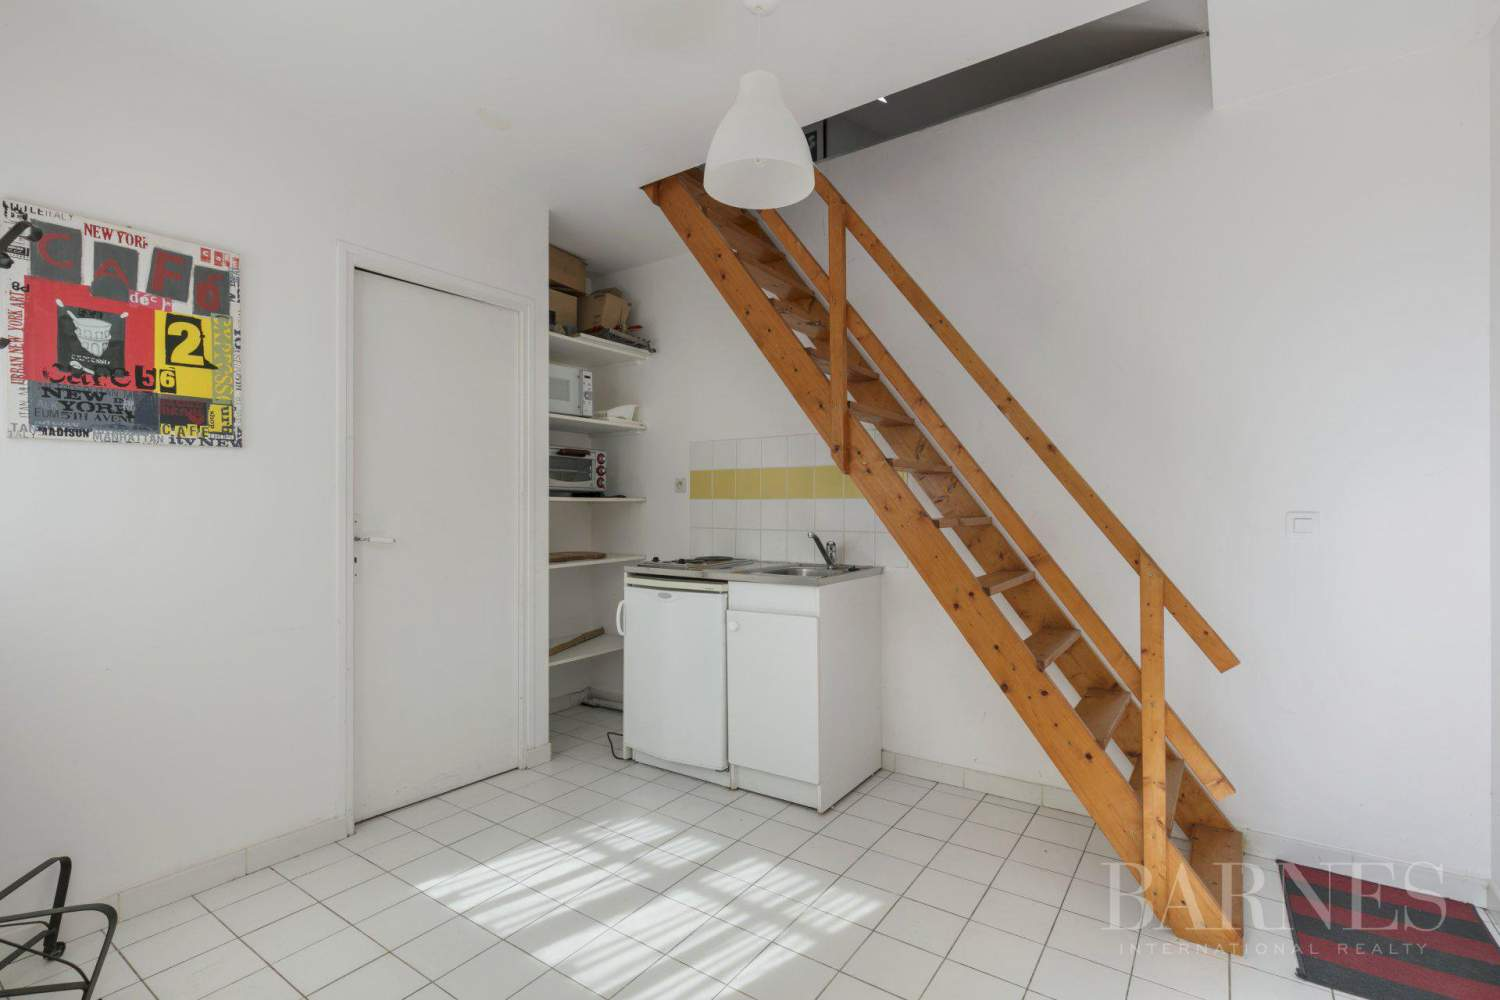 CENTRE OF NOISY-LE-ROI, 330m² (3,552 sq ft) FAMILY HOUSE, 5 BEDROOMS, 500m² (5,382 sq ft), SEPARATE STUDIO picture 12